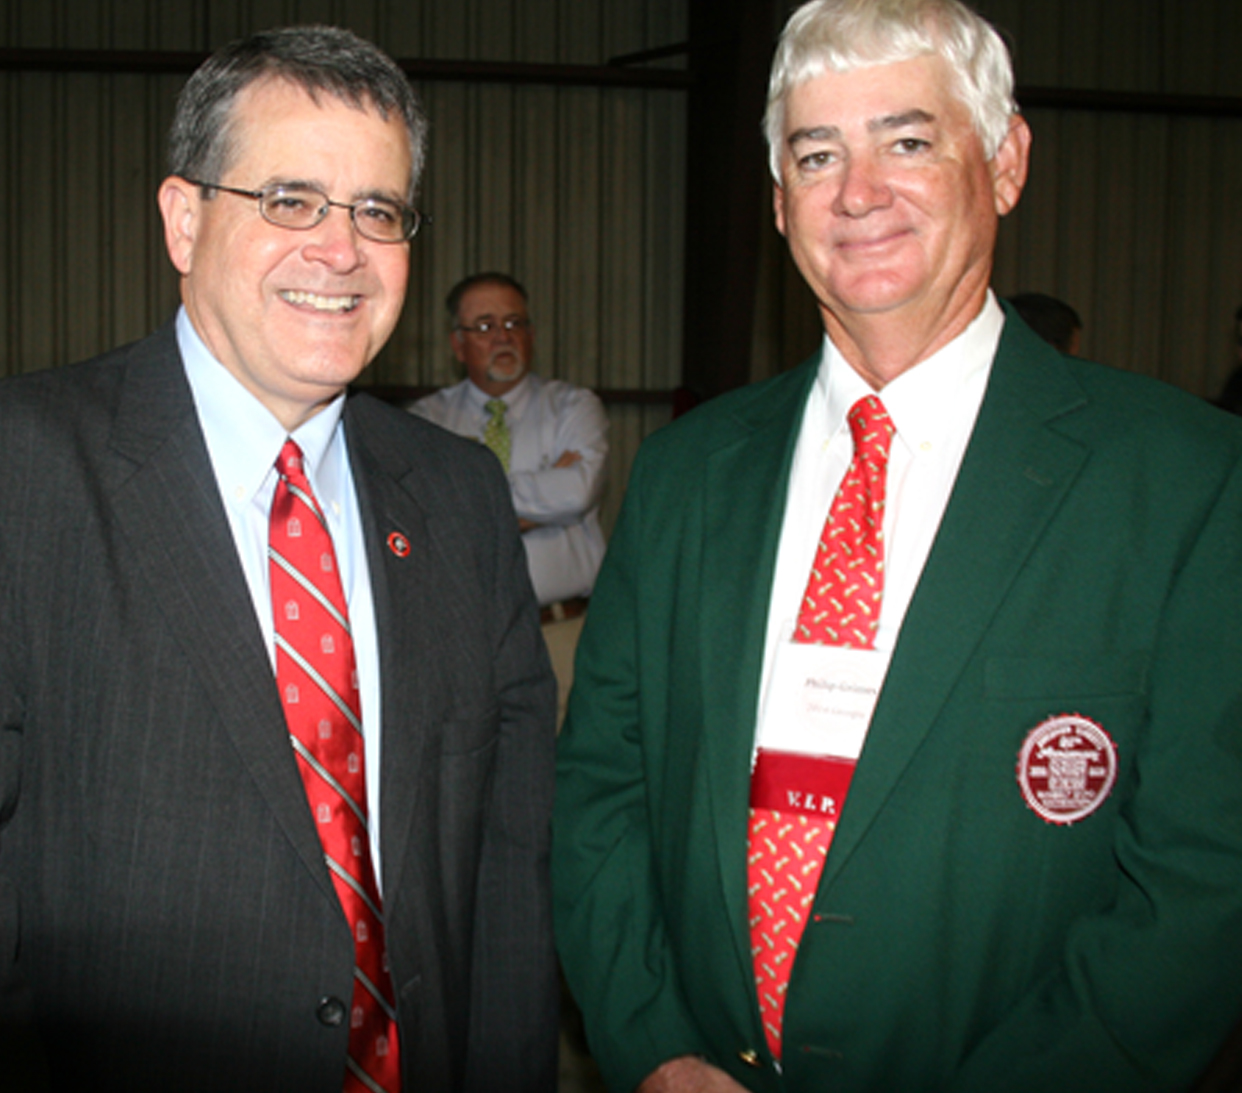 Philip Grimes is pictured with University of Georgia President Jere Morehead.